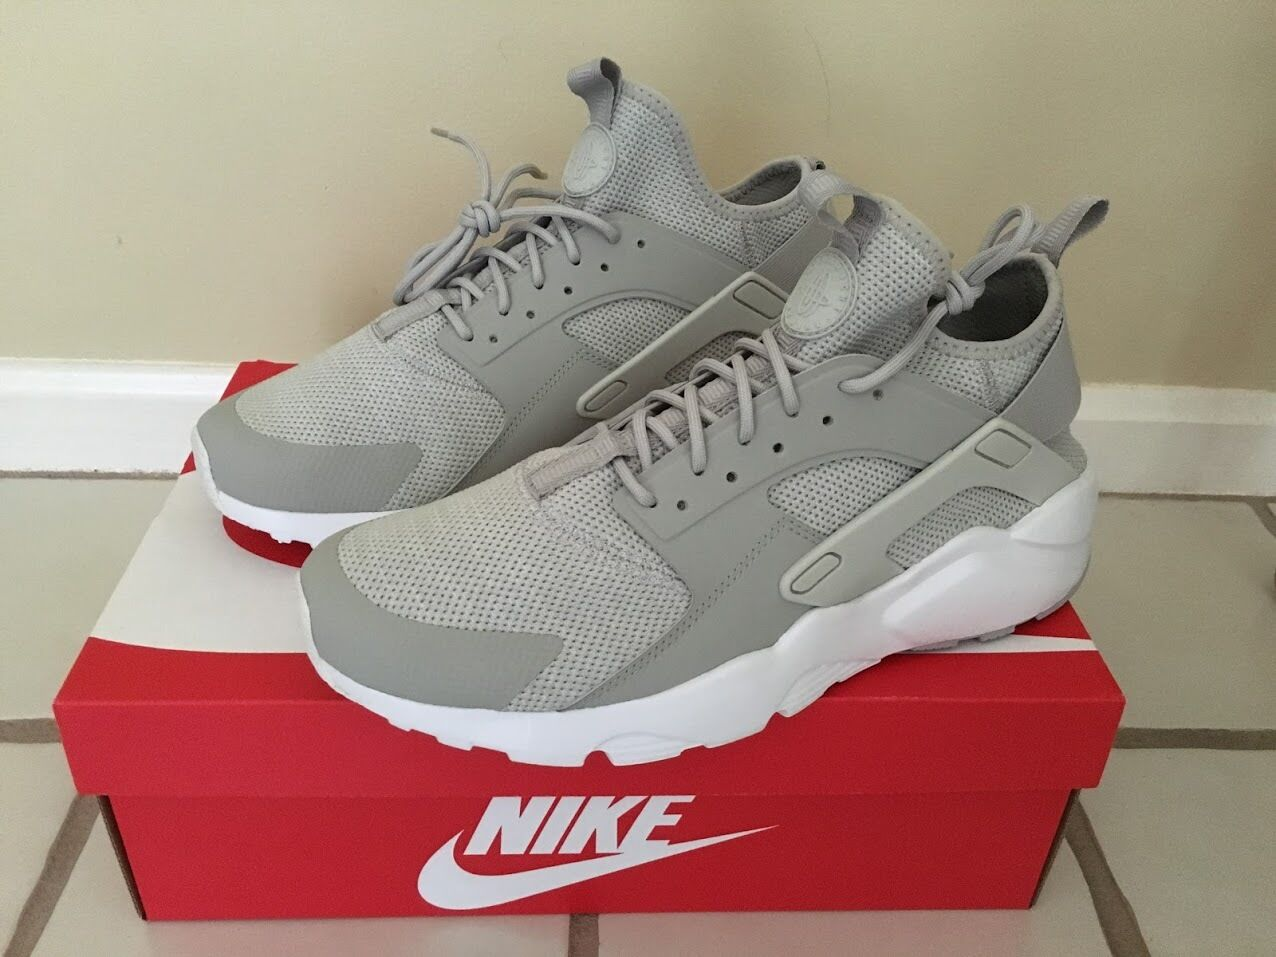 NIKE AIR HUARACHE RUN ULTRA SNEAKERS SIZE 11 833147002 BRAND NEW BEST OFFER! The most popular shoes for men and women